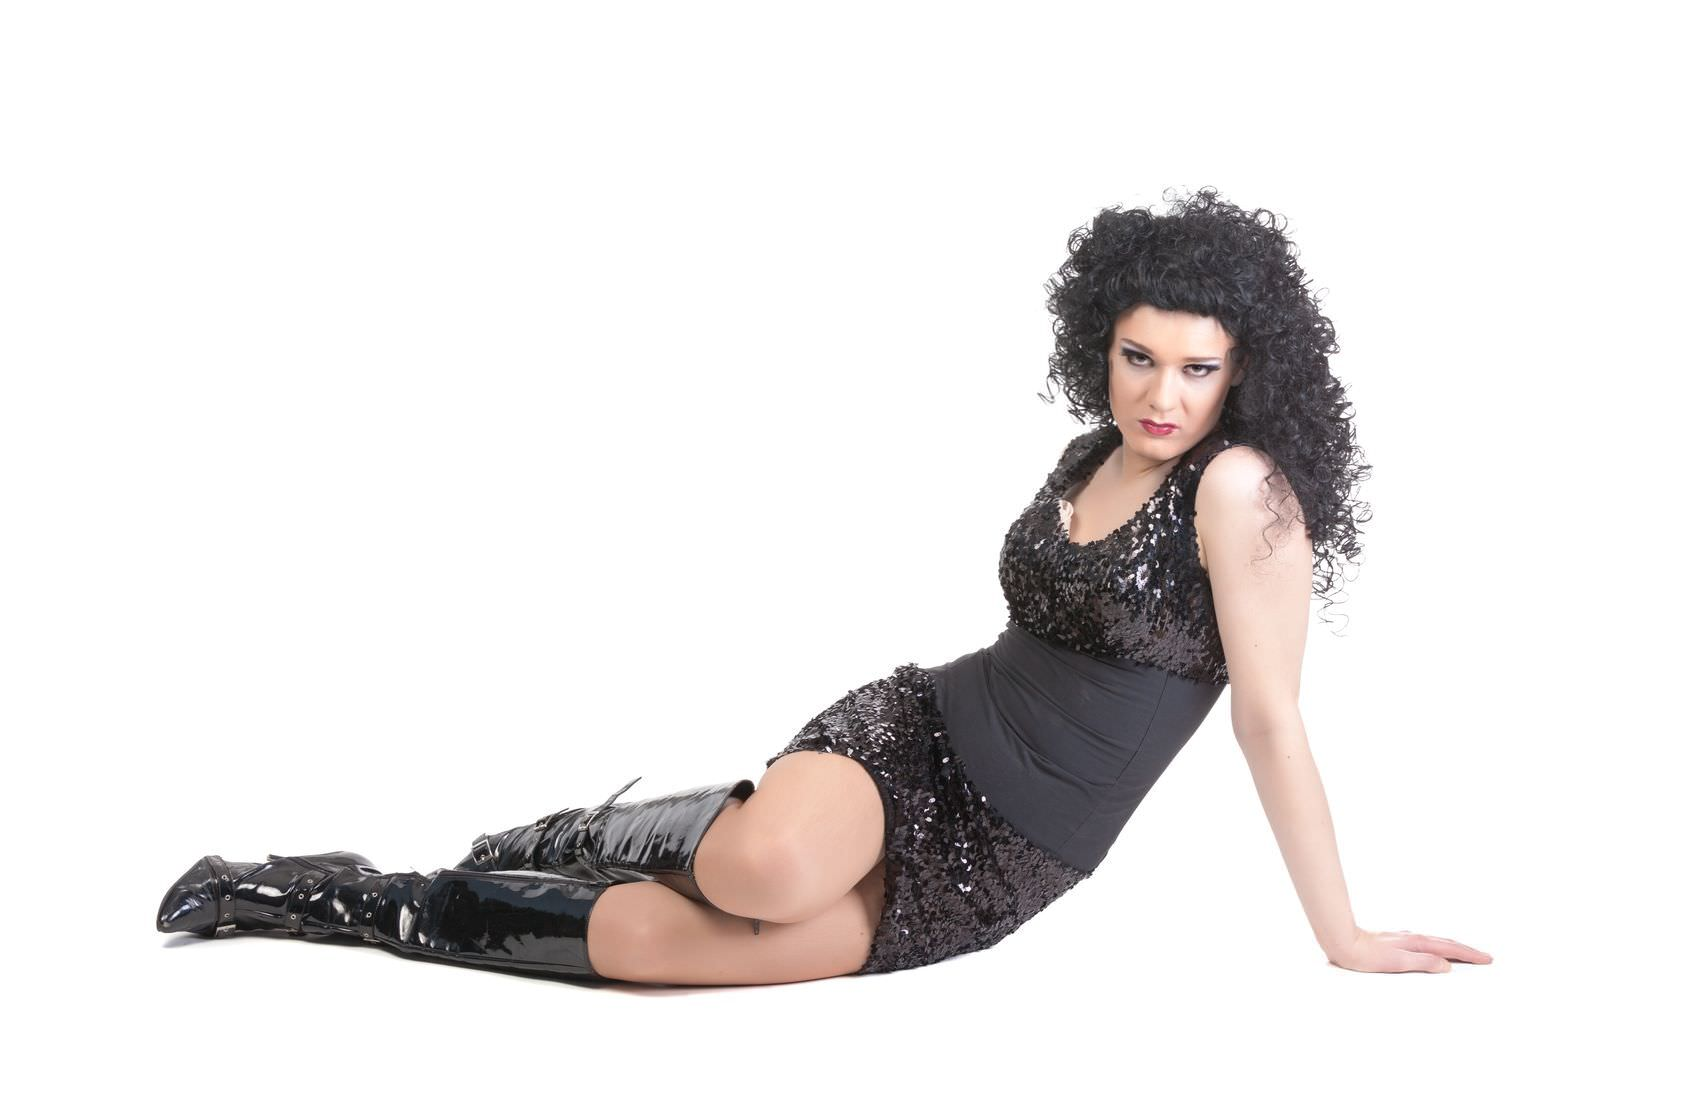 Meet Crossdressers Who Will Make Life More Intriguing